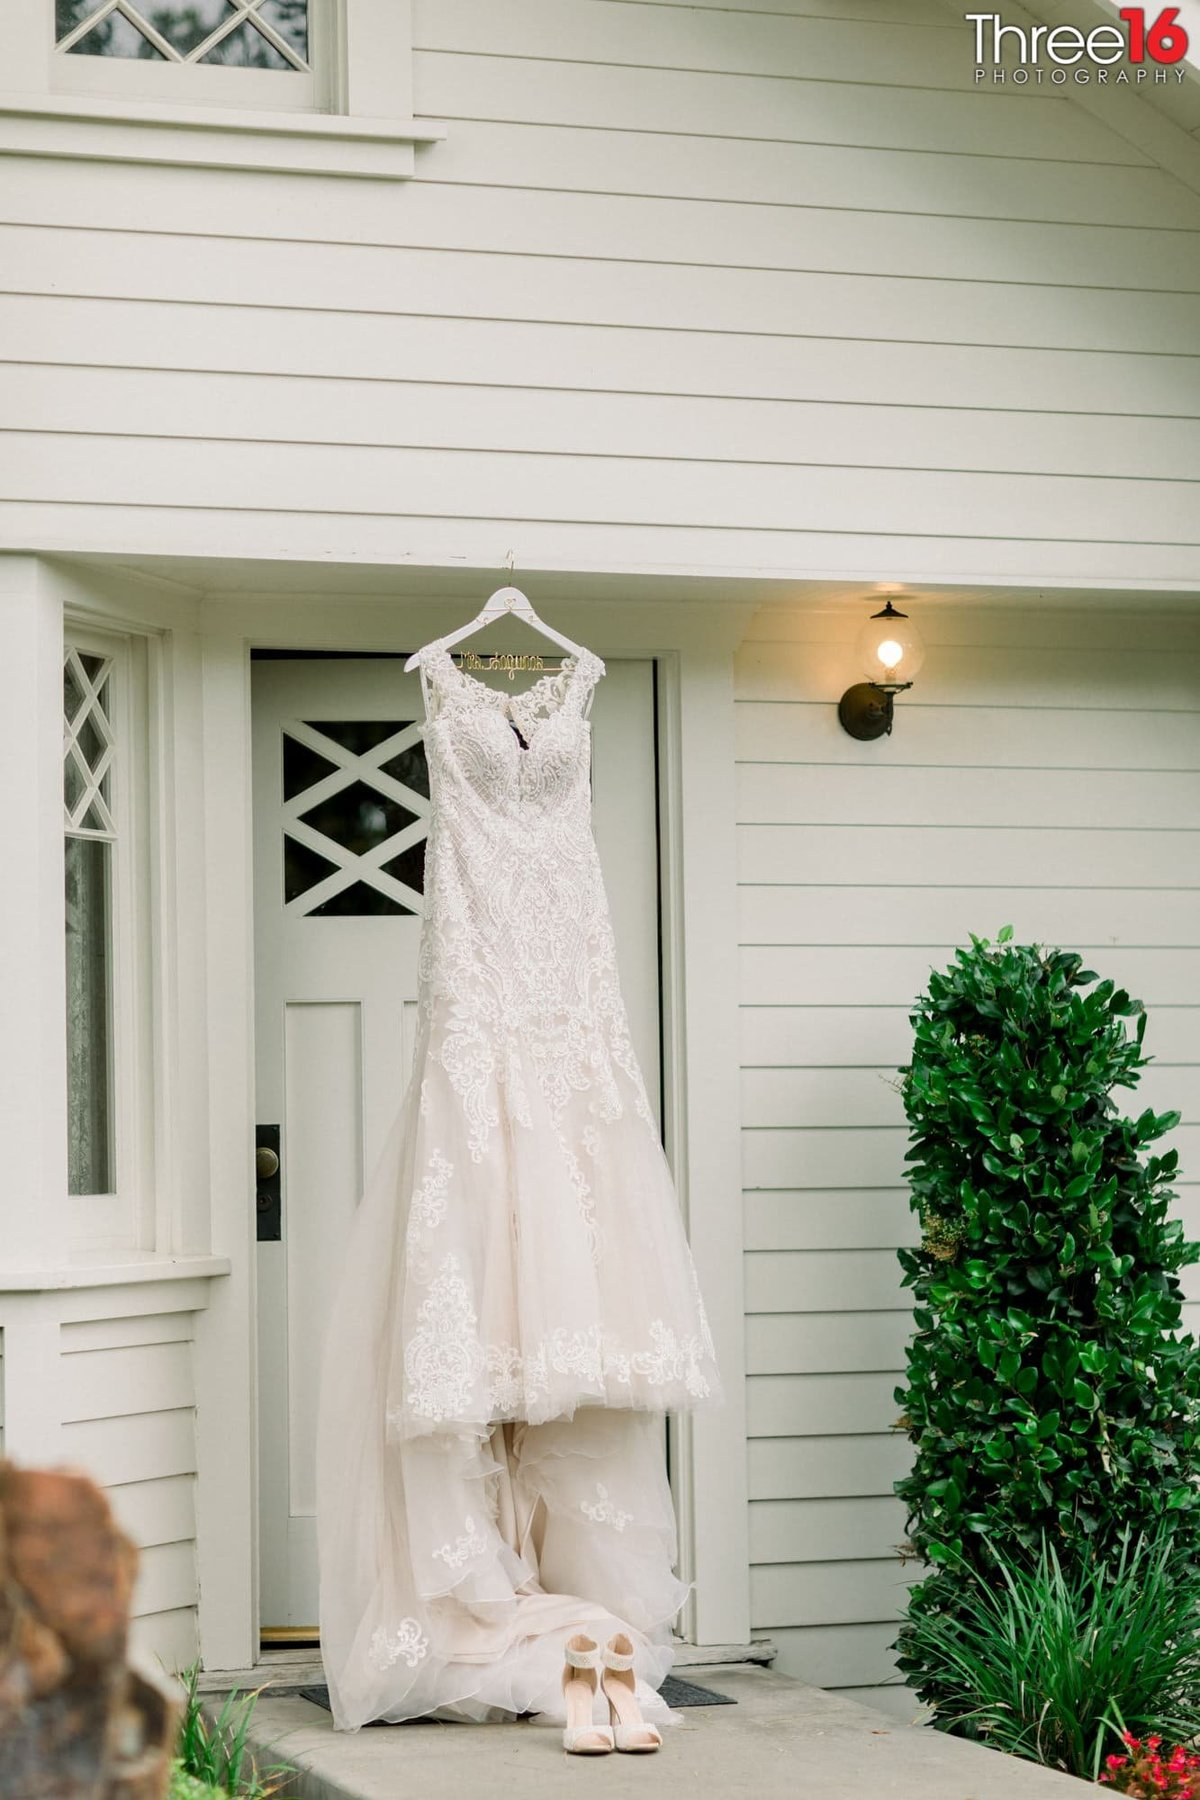 Bride's Gown and Shoes are on display outside of the Nixon Birthplace in Yorba Linda, CA